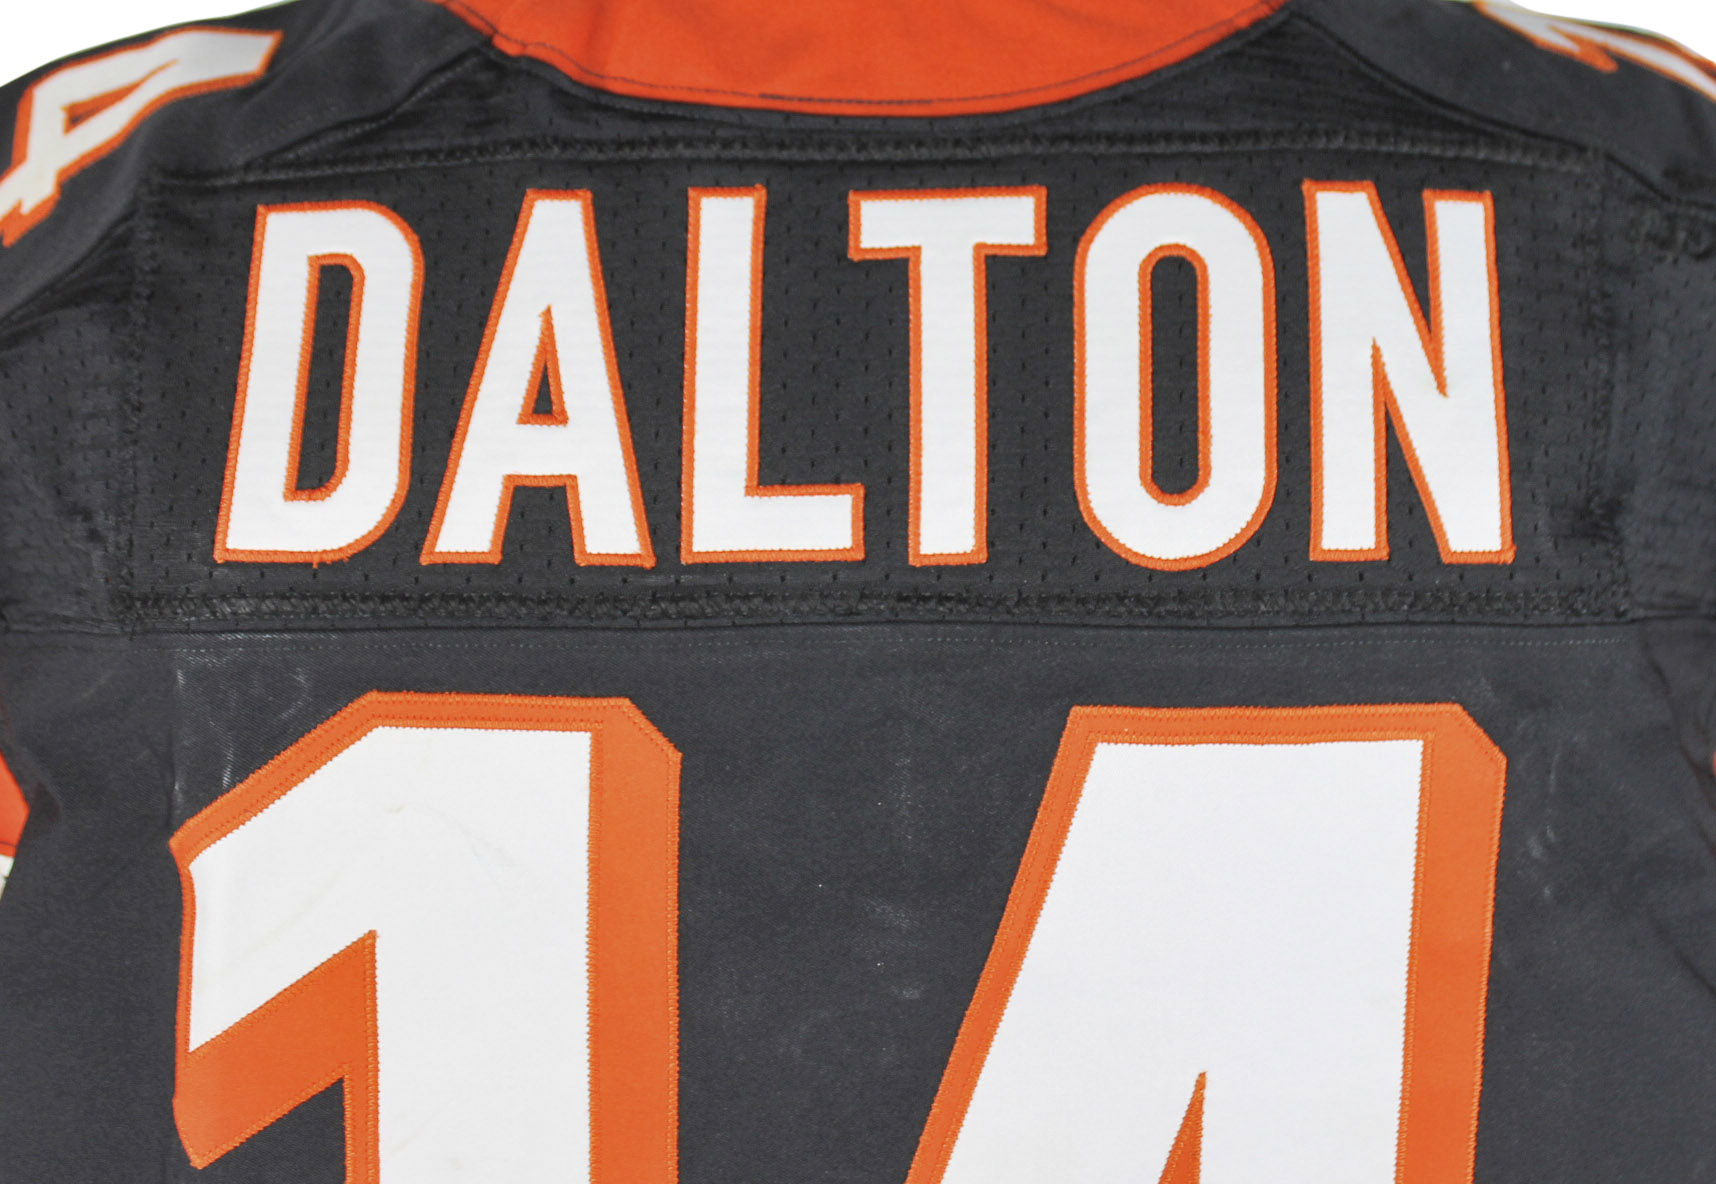 andy dalton game worn jersey